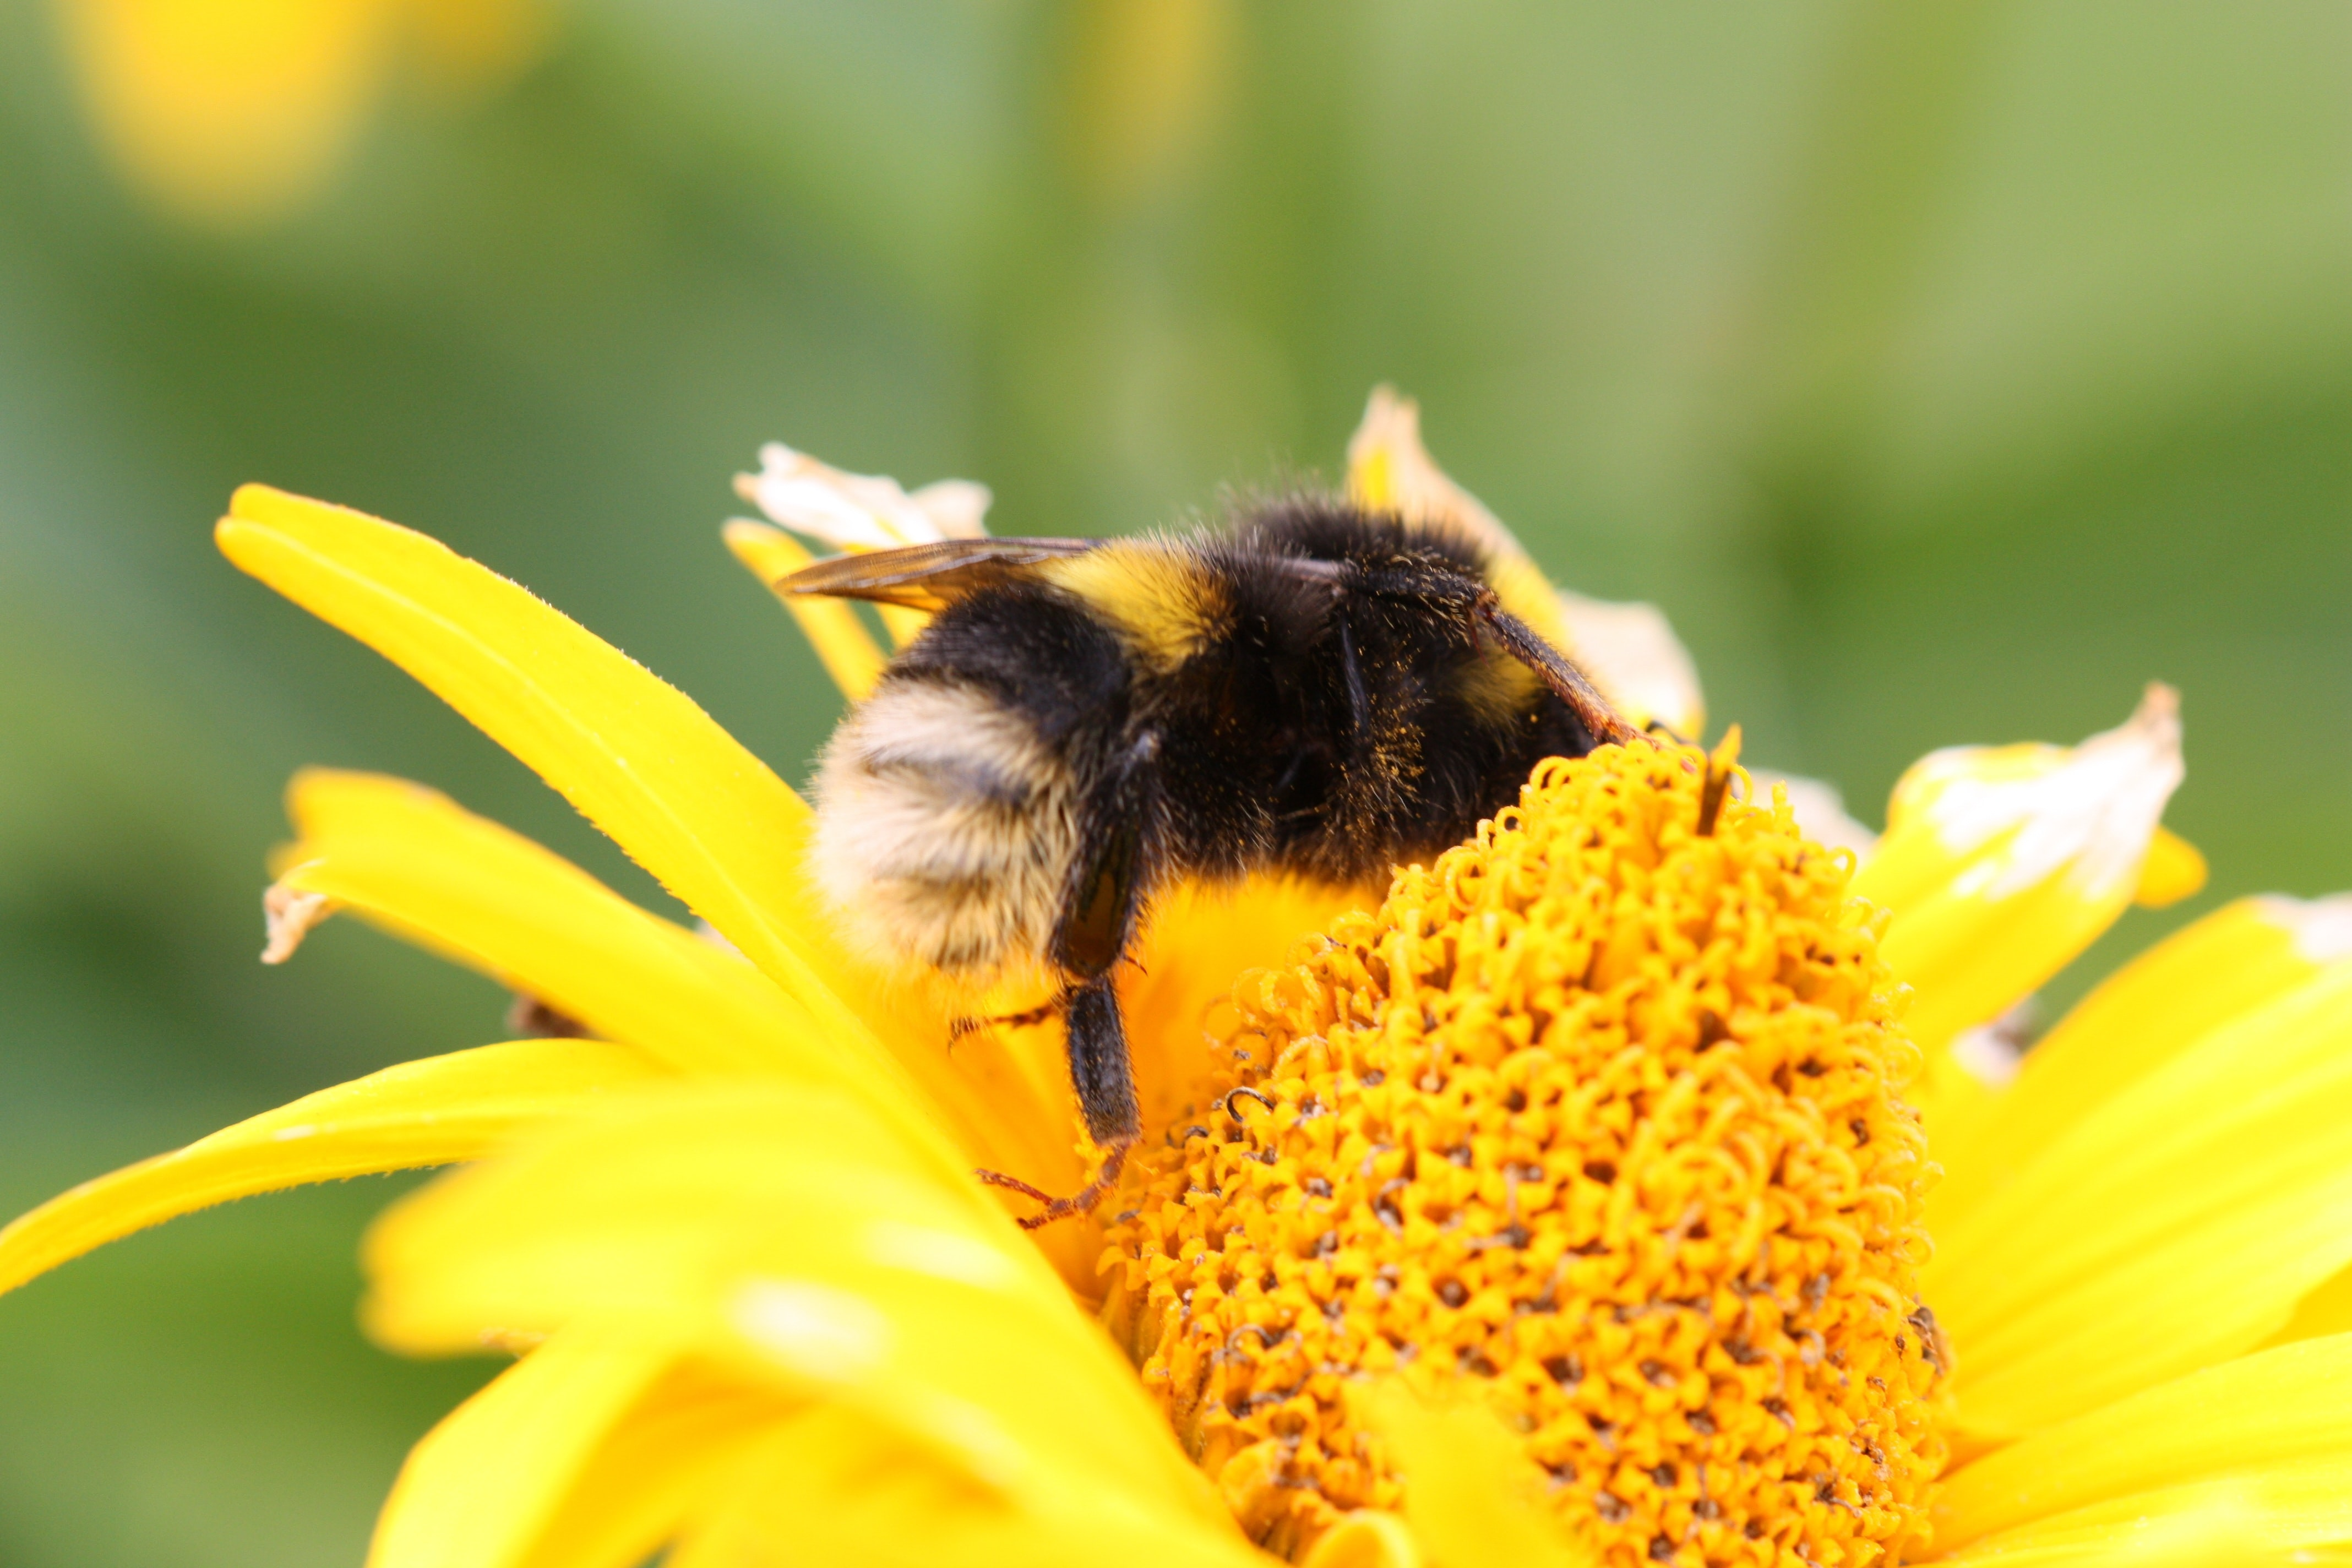 yellow and black bee on yellow-petaled flower